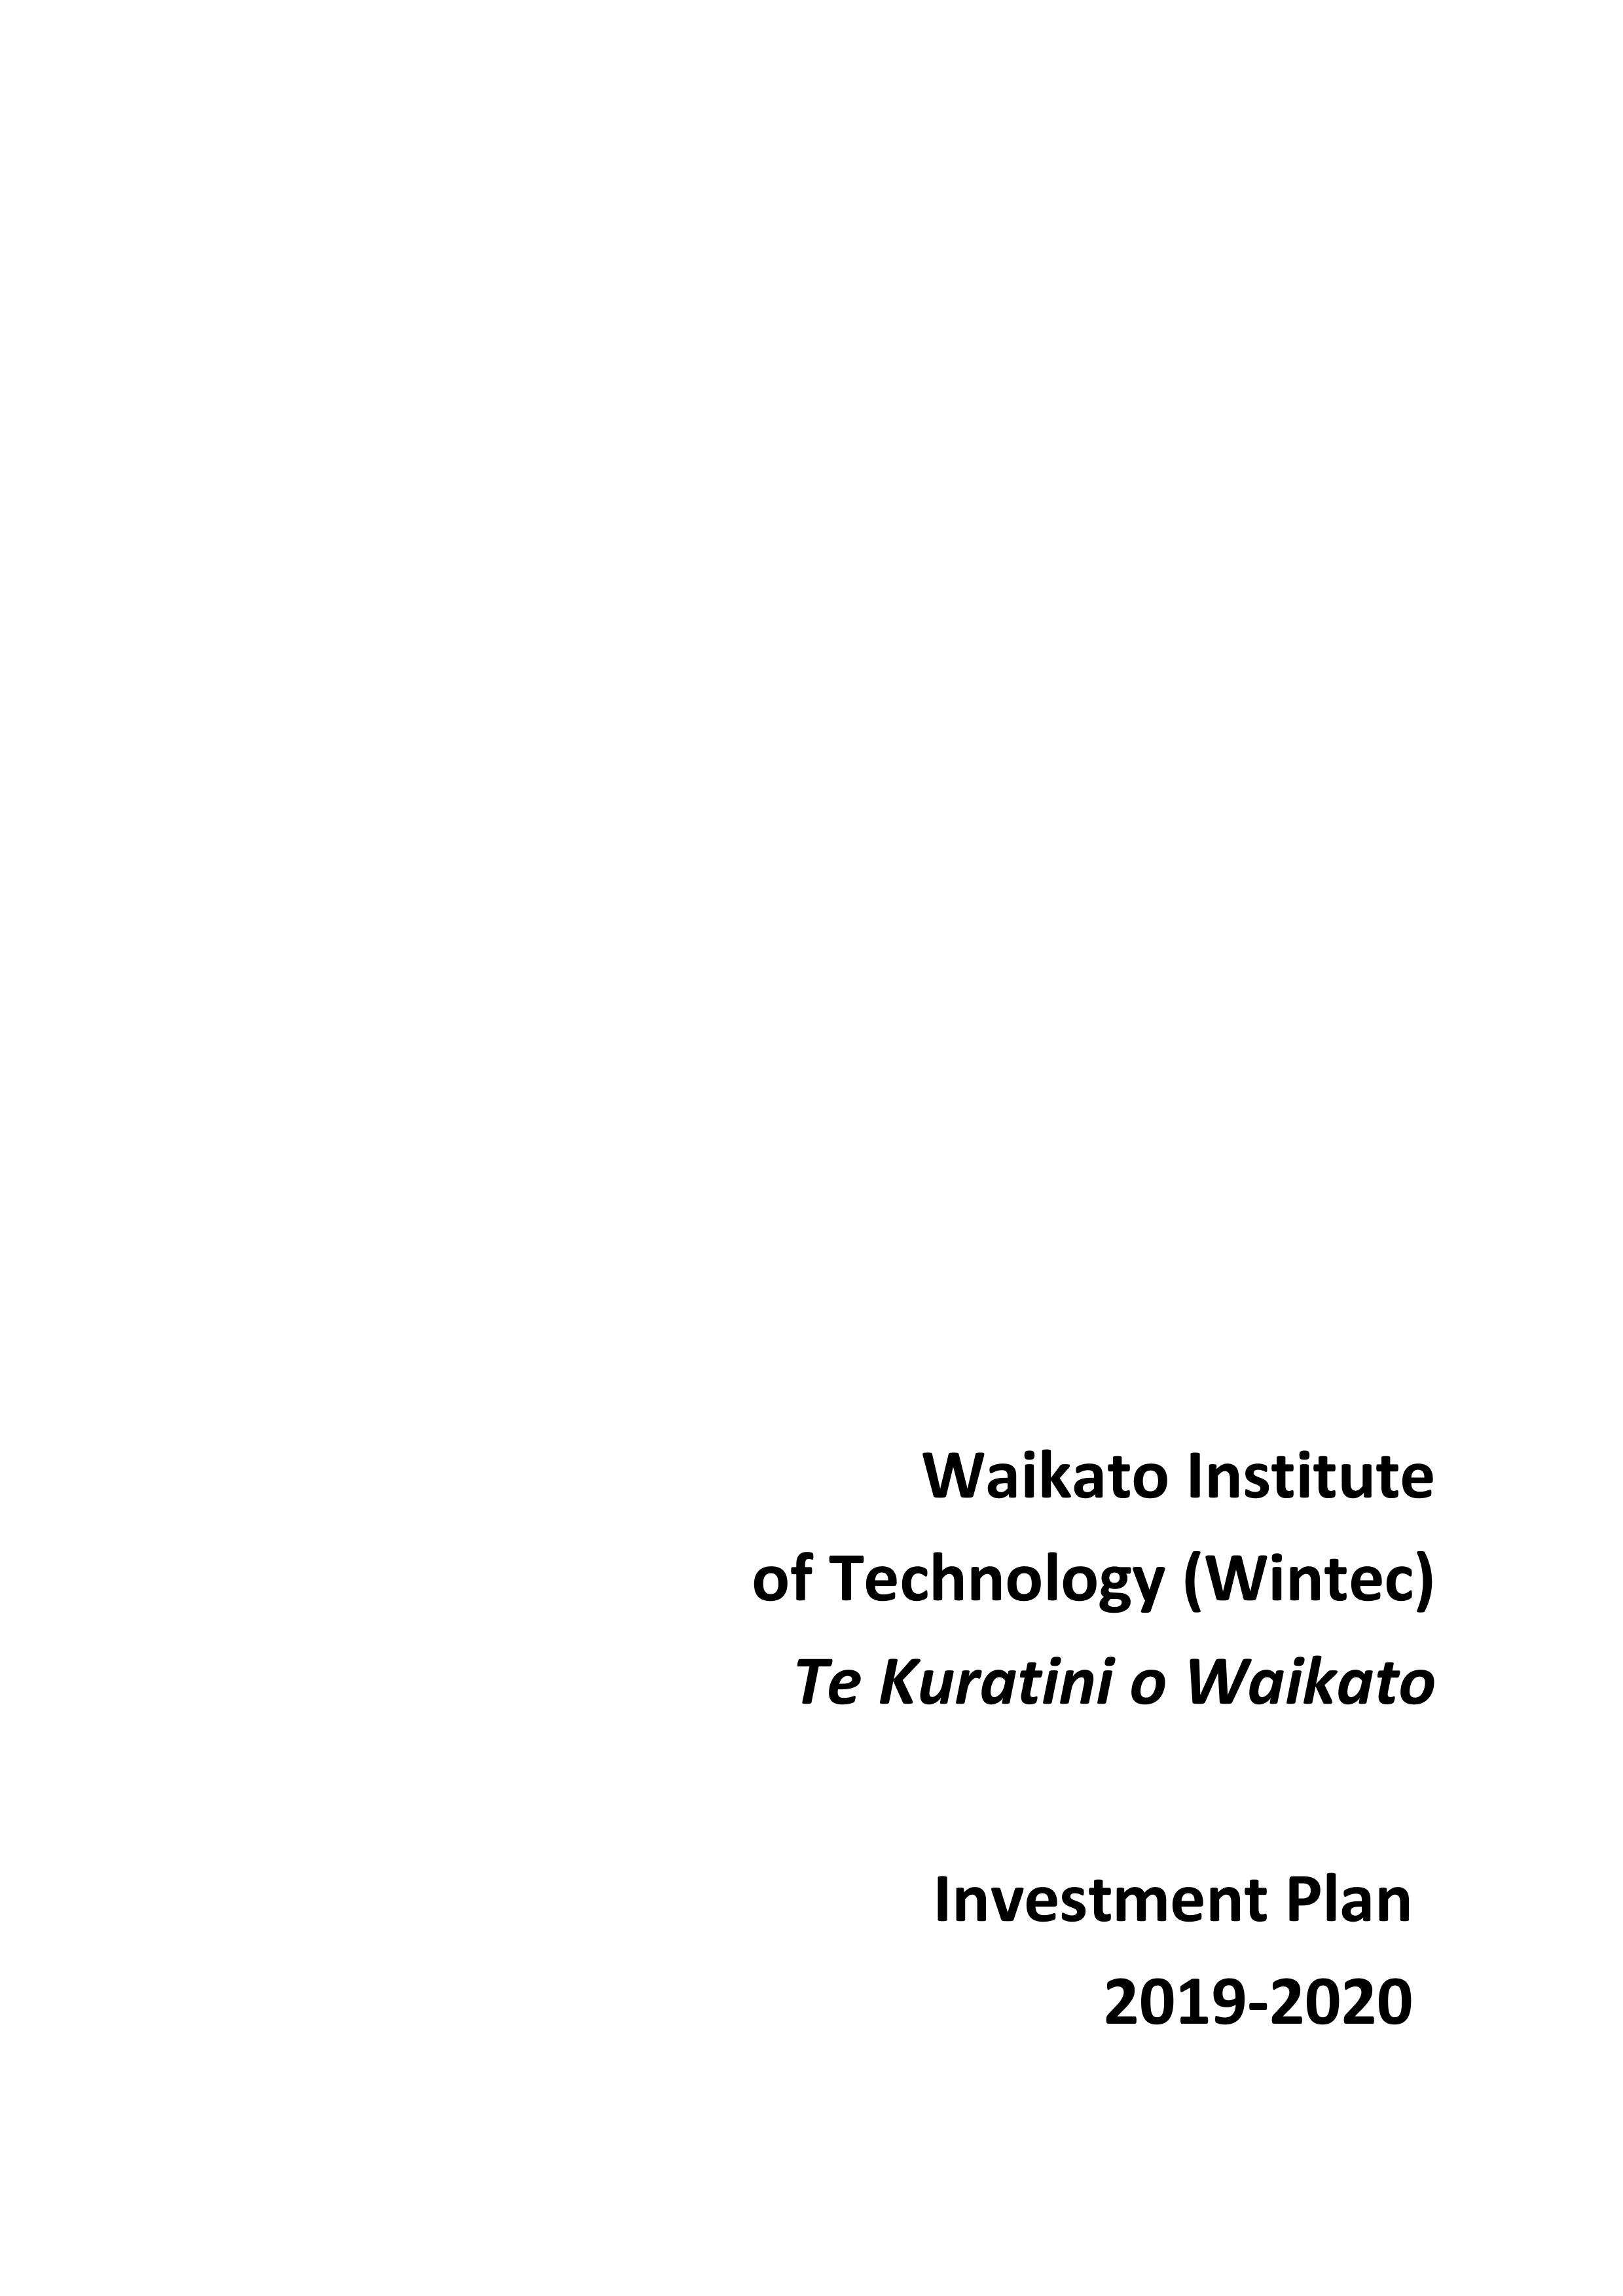 Wintec investment plan 2019-2020